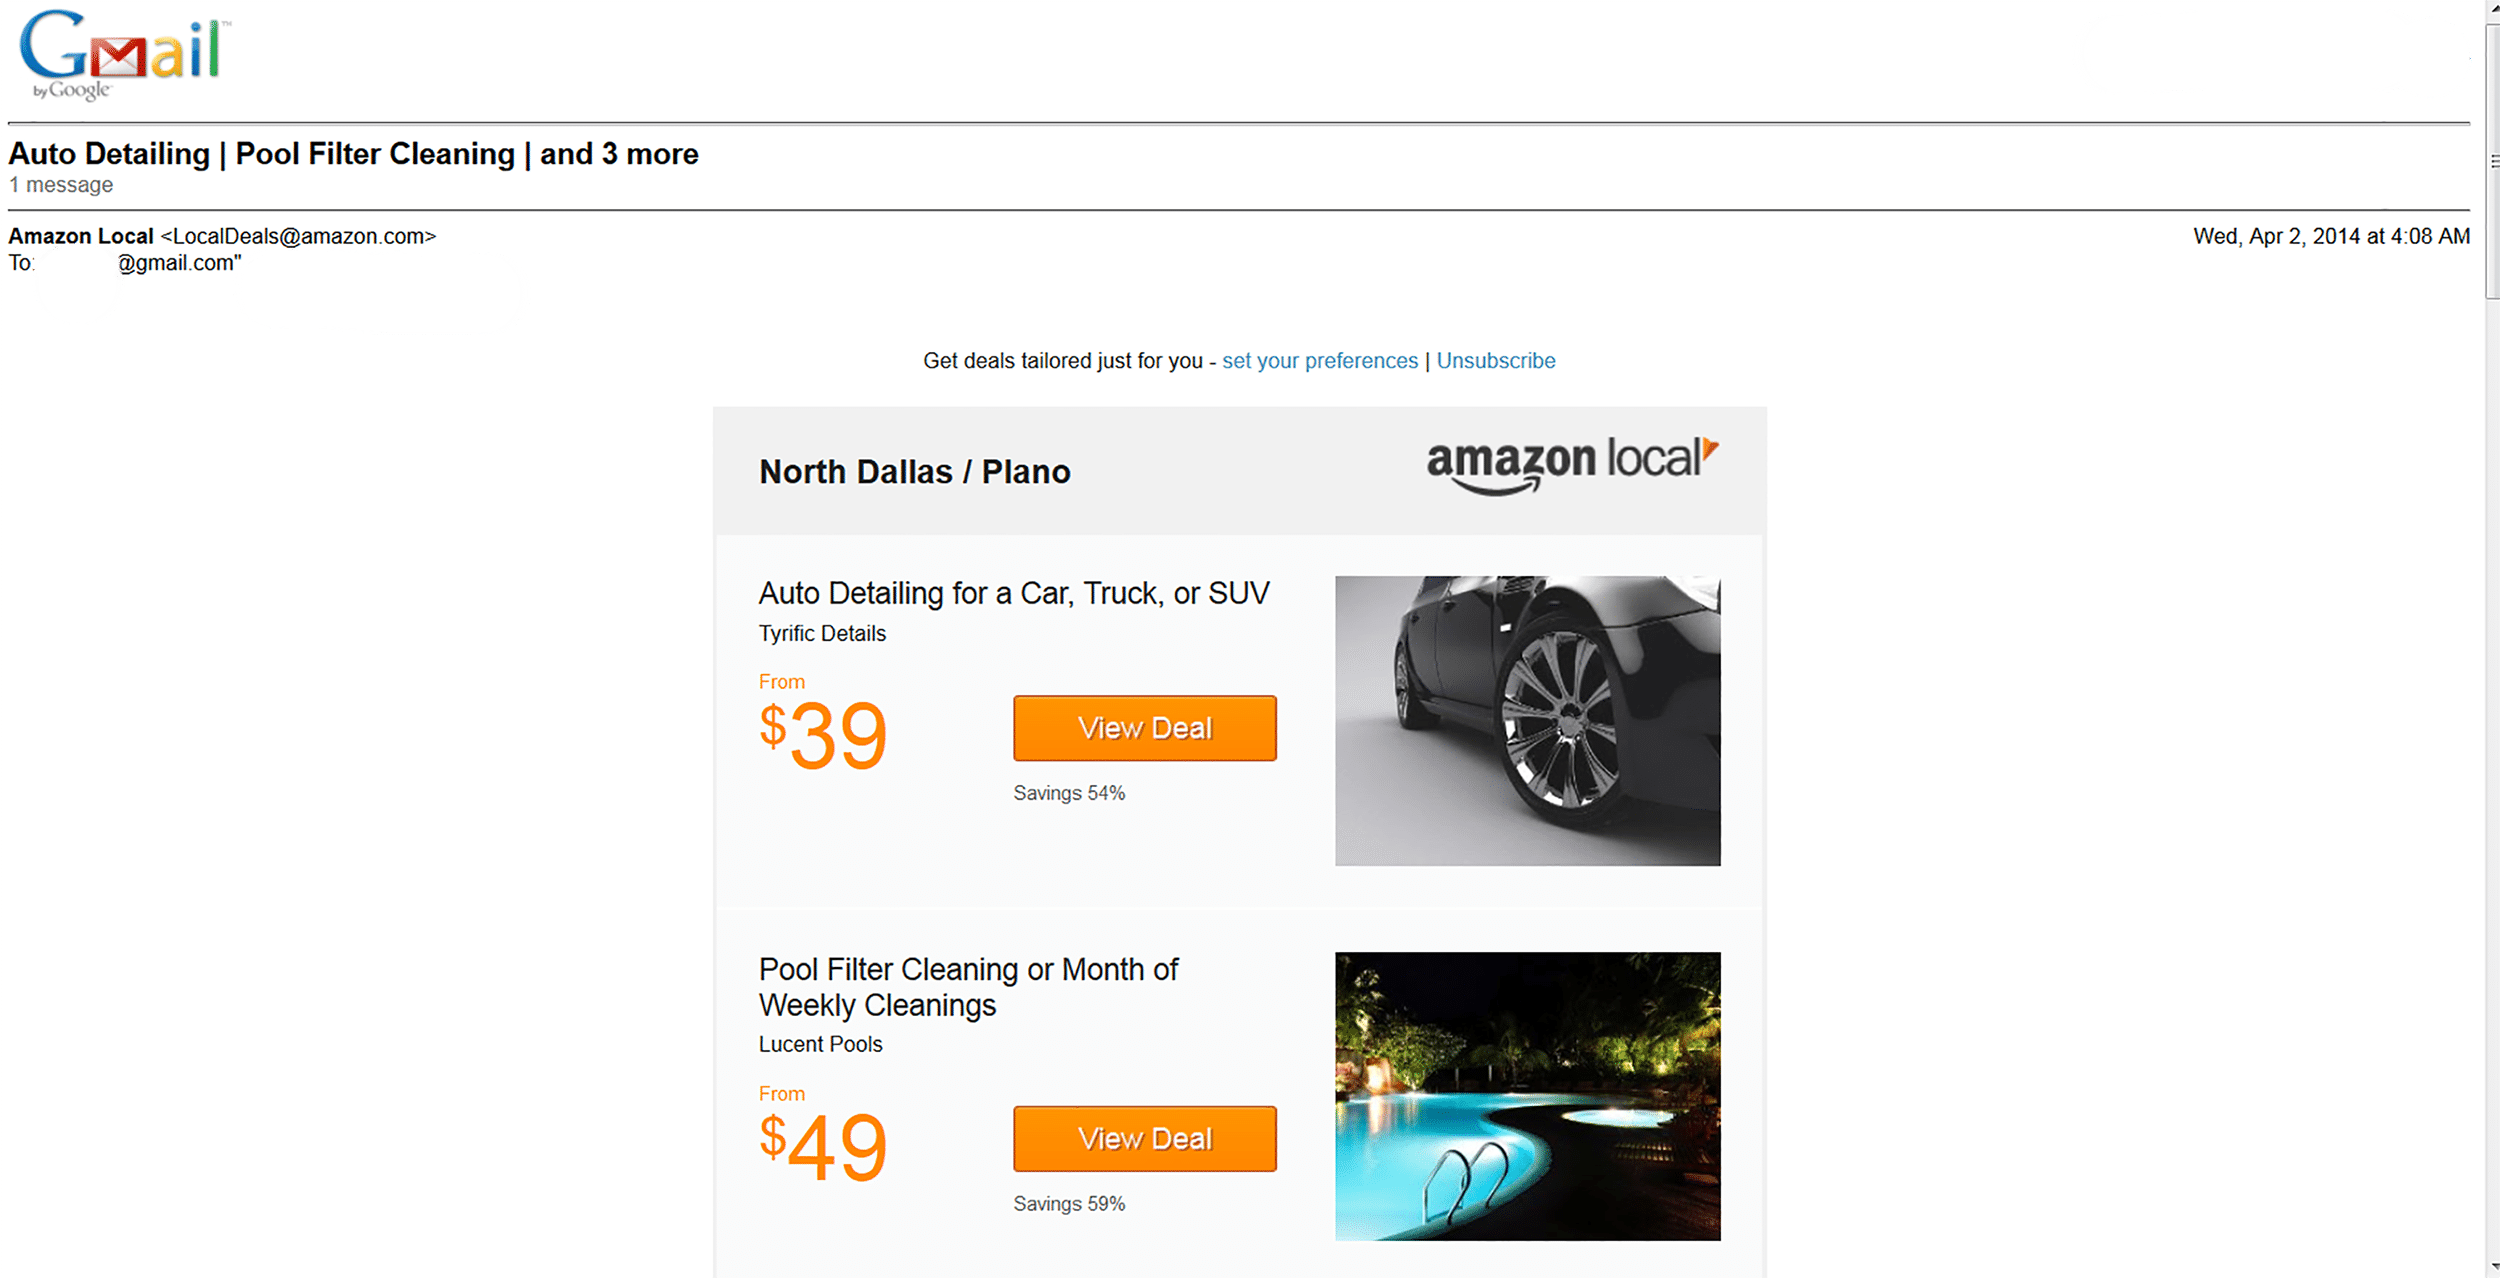 Email Example from Amazon Local